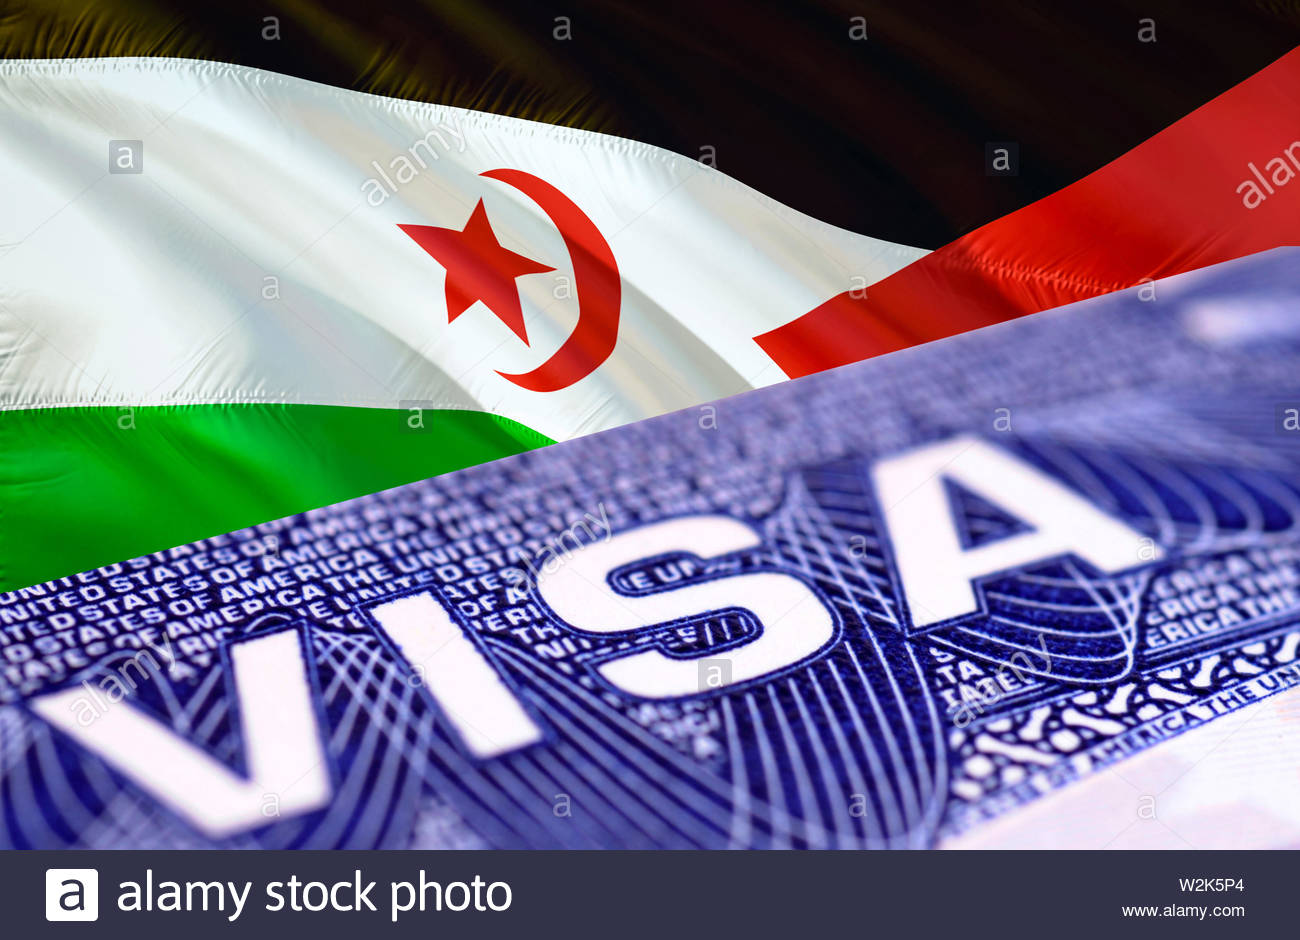 Western Sahara Visa Document, with Western Sahara flag in background, 3D rendering. Western Sahara flag with Close up text VISA on USA visa stamp in p - Stock Image